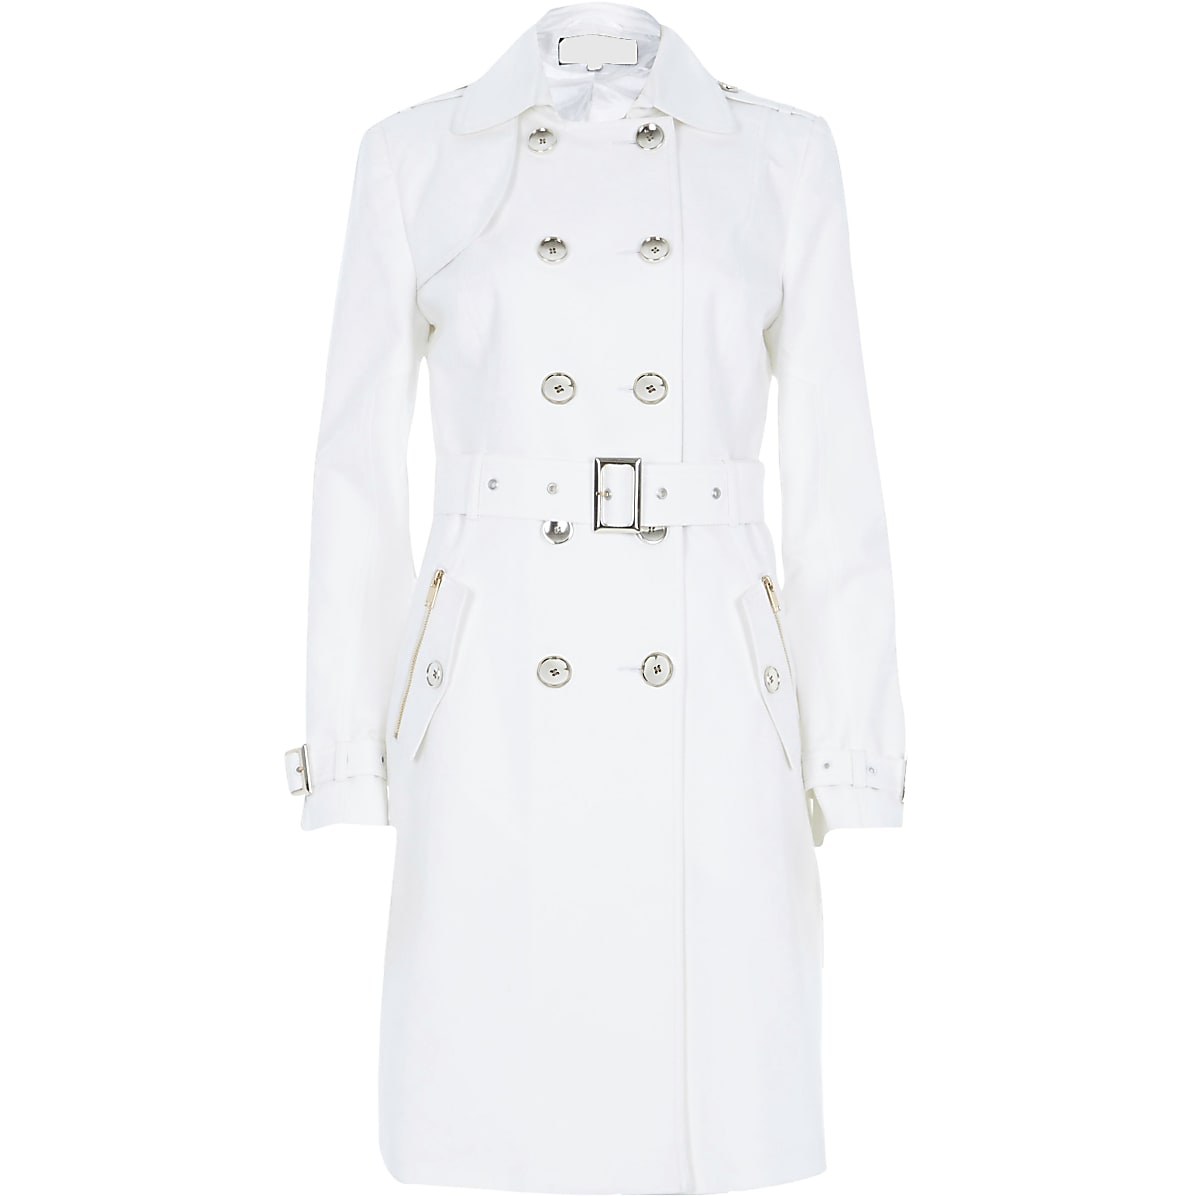 White long sleeve traditional trench coat